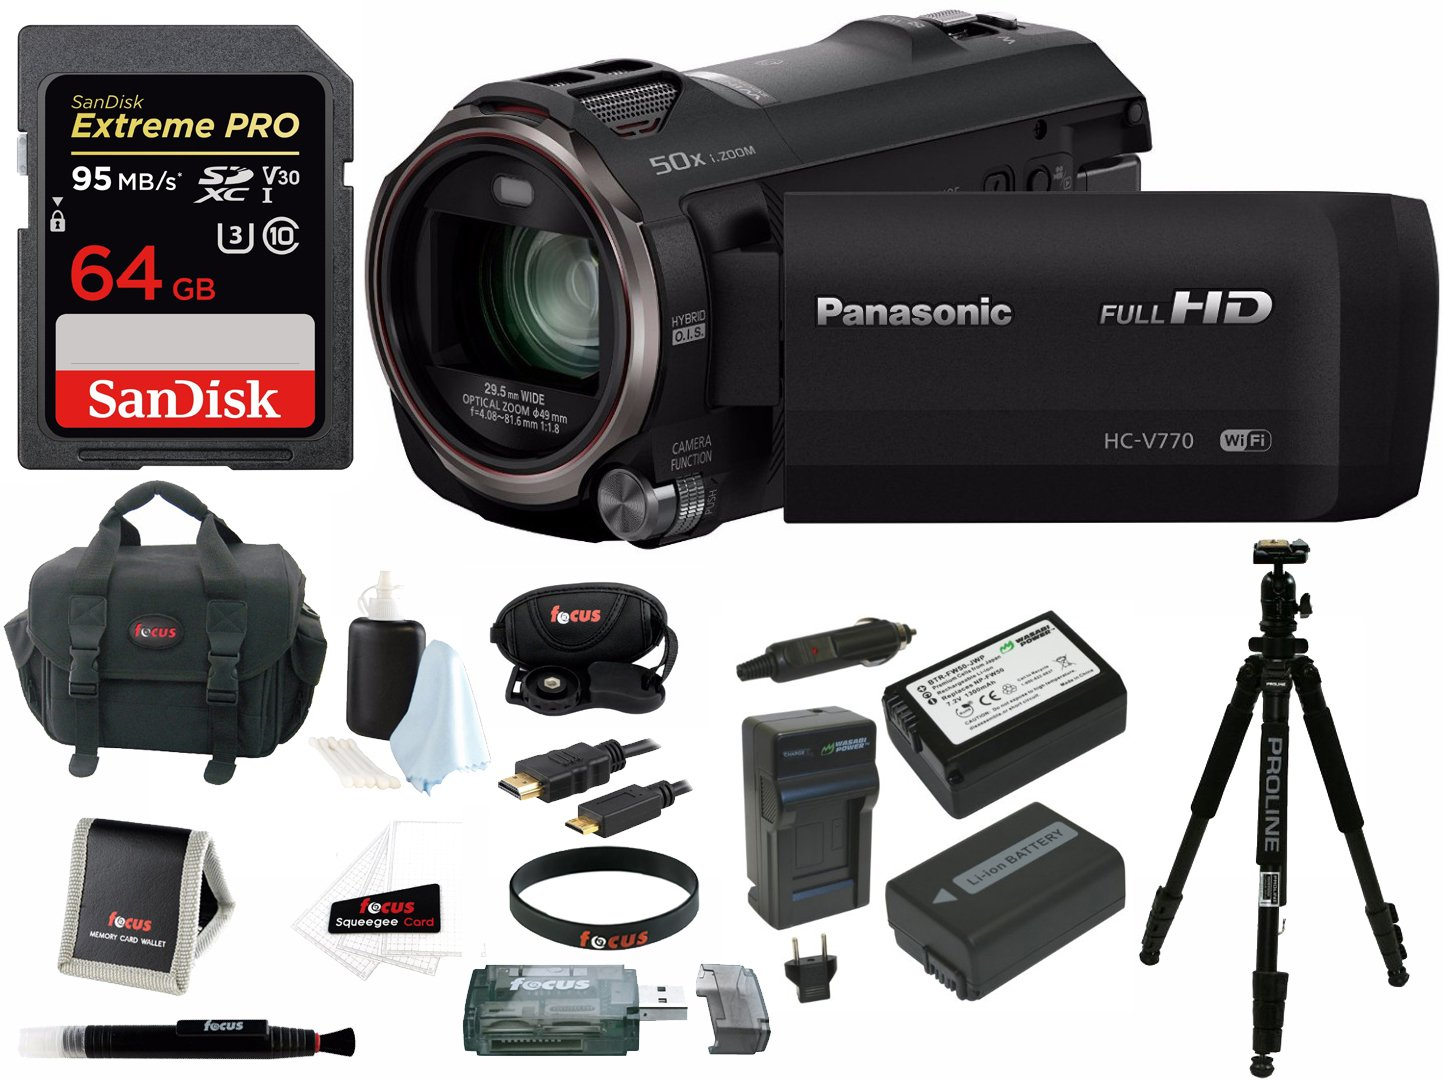 Panasonic HC-V770 HD Camcorder Bundles (64GB Pro Kit)